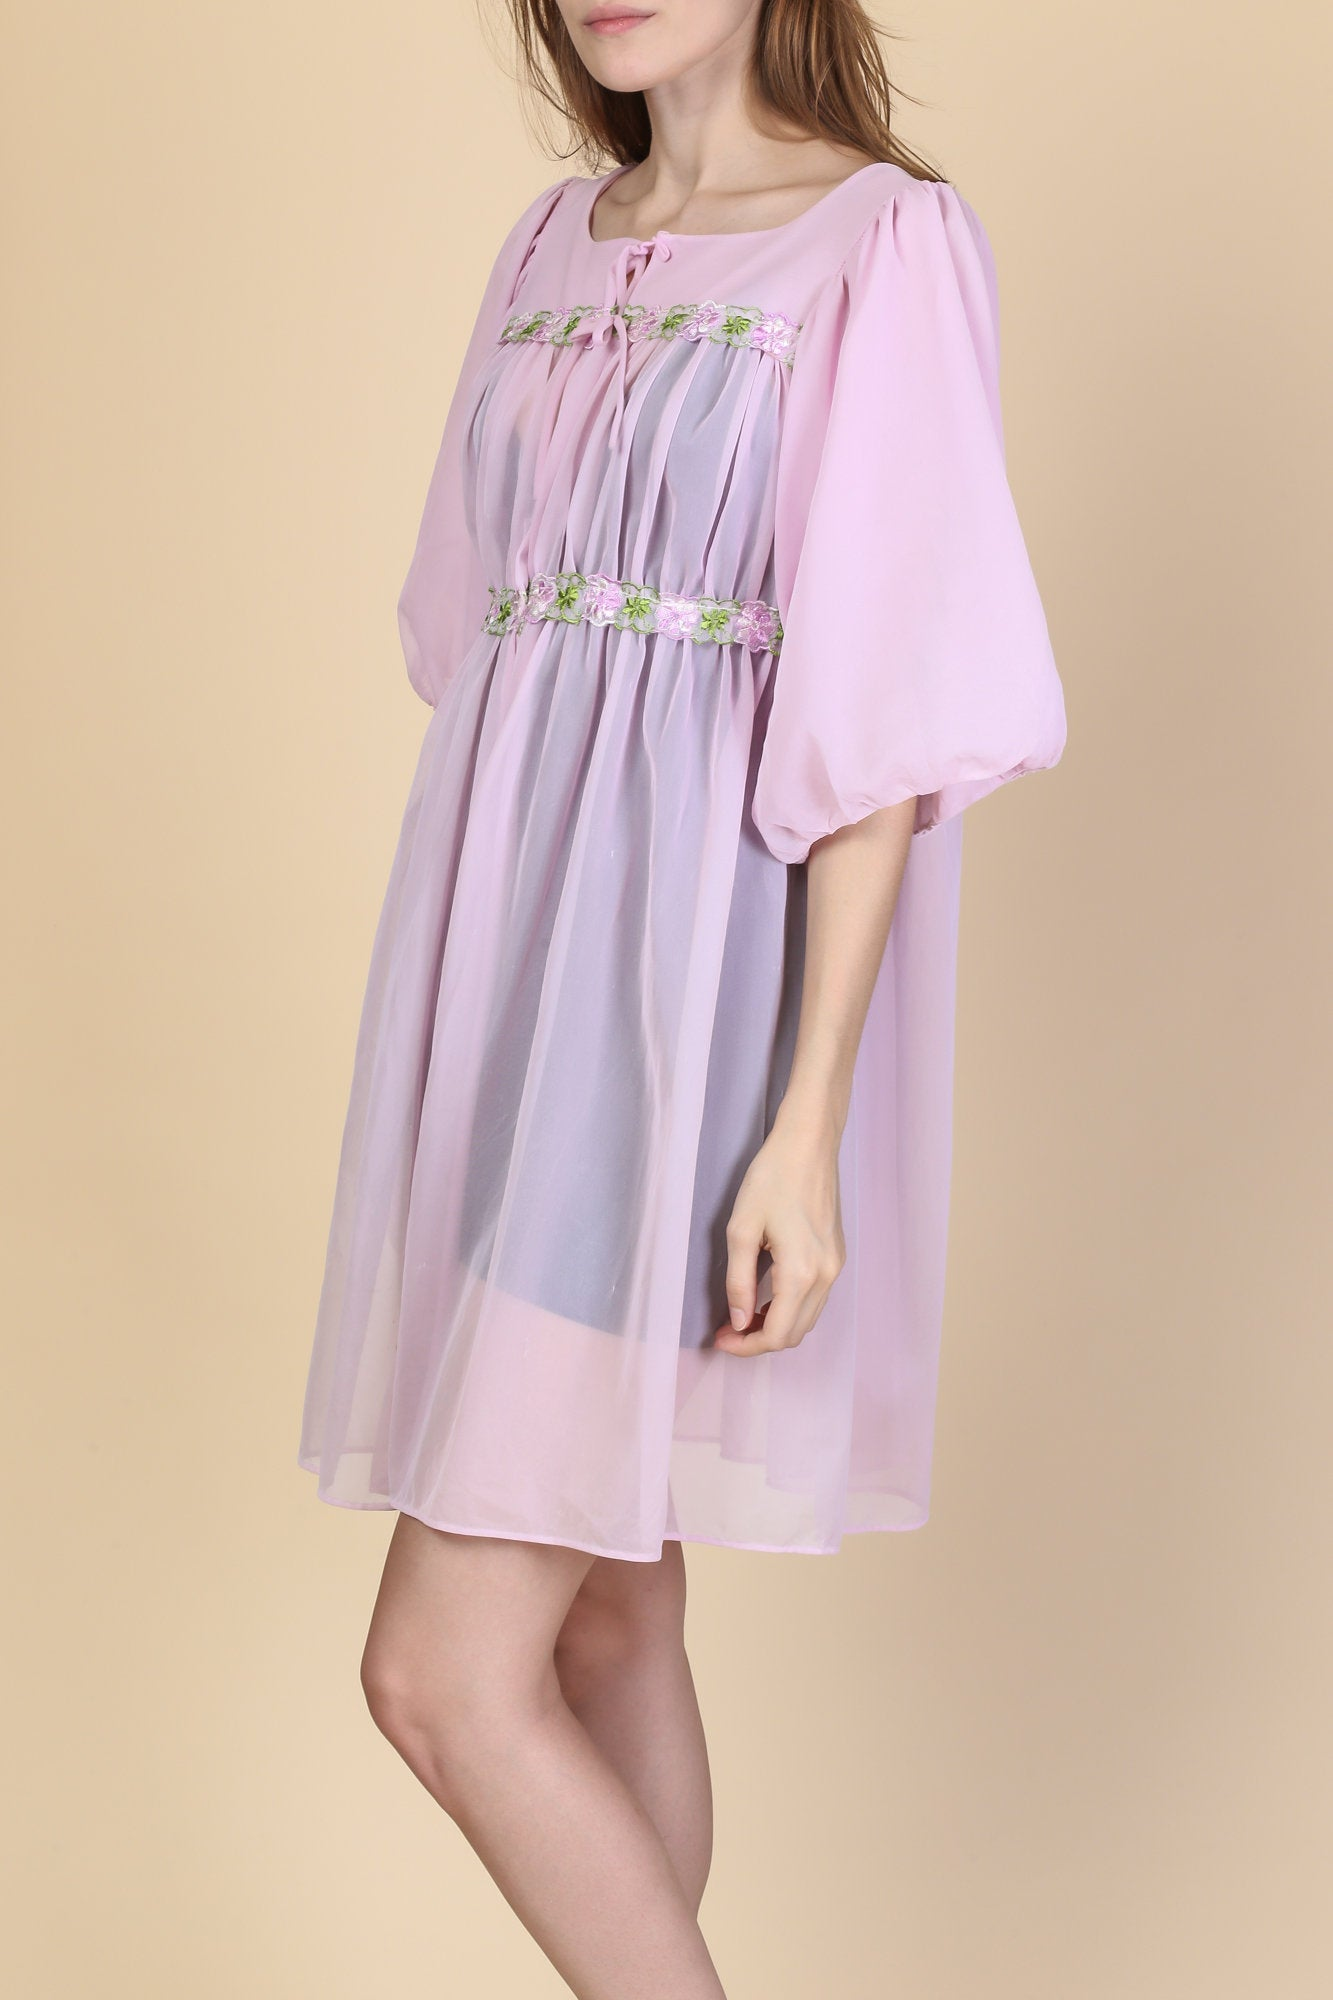 60s Sheer Lavender Peignoir Robe - Small